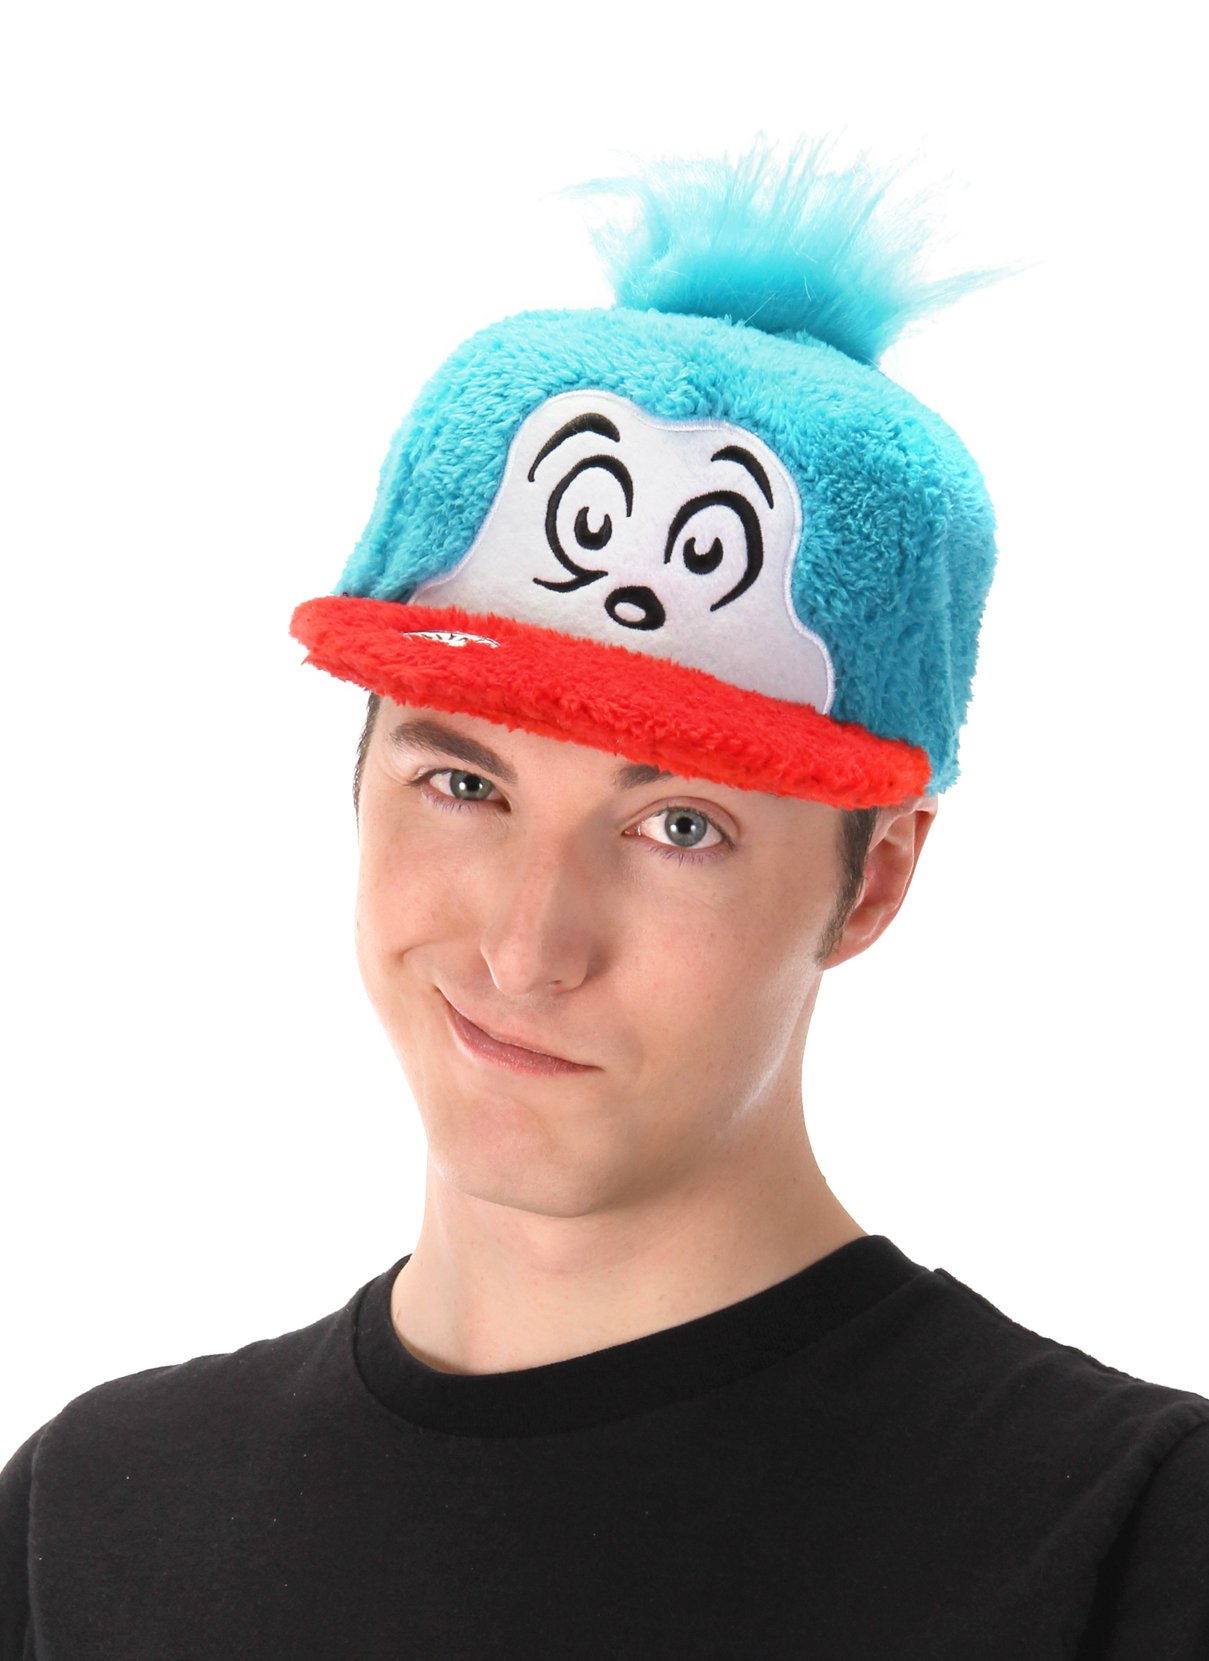 Dr. Seuss Thing 2 Cat in The Hat Costume Fuzzy Cap